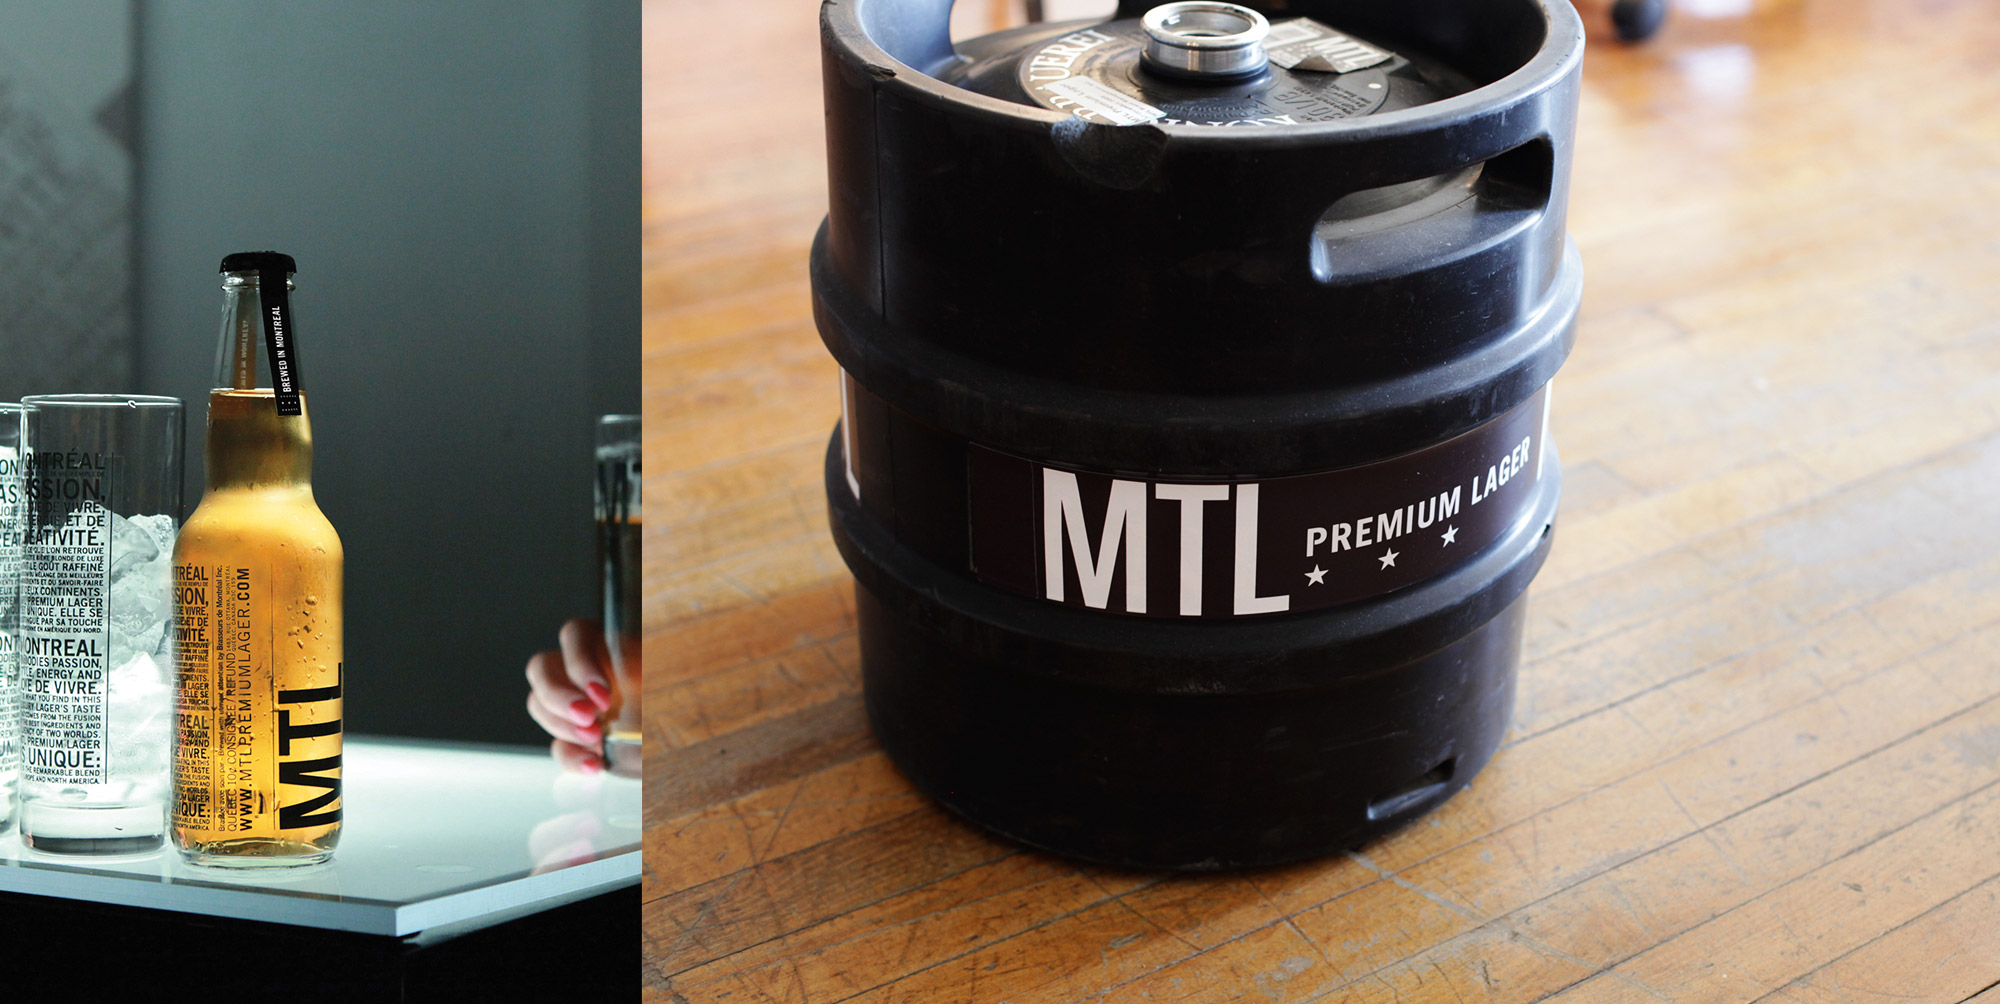 MTL Premium Larger keg